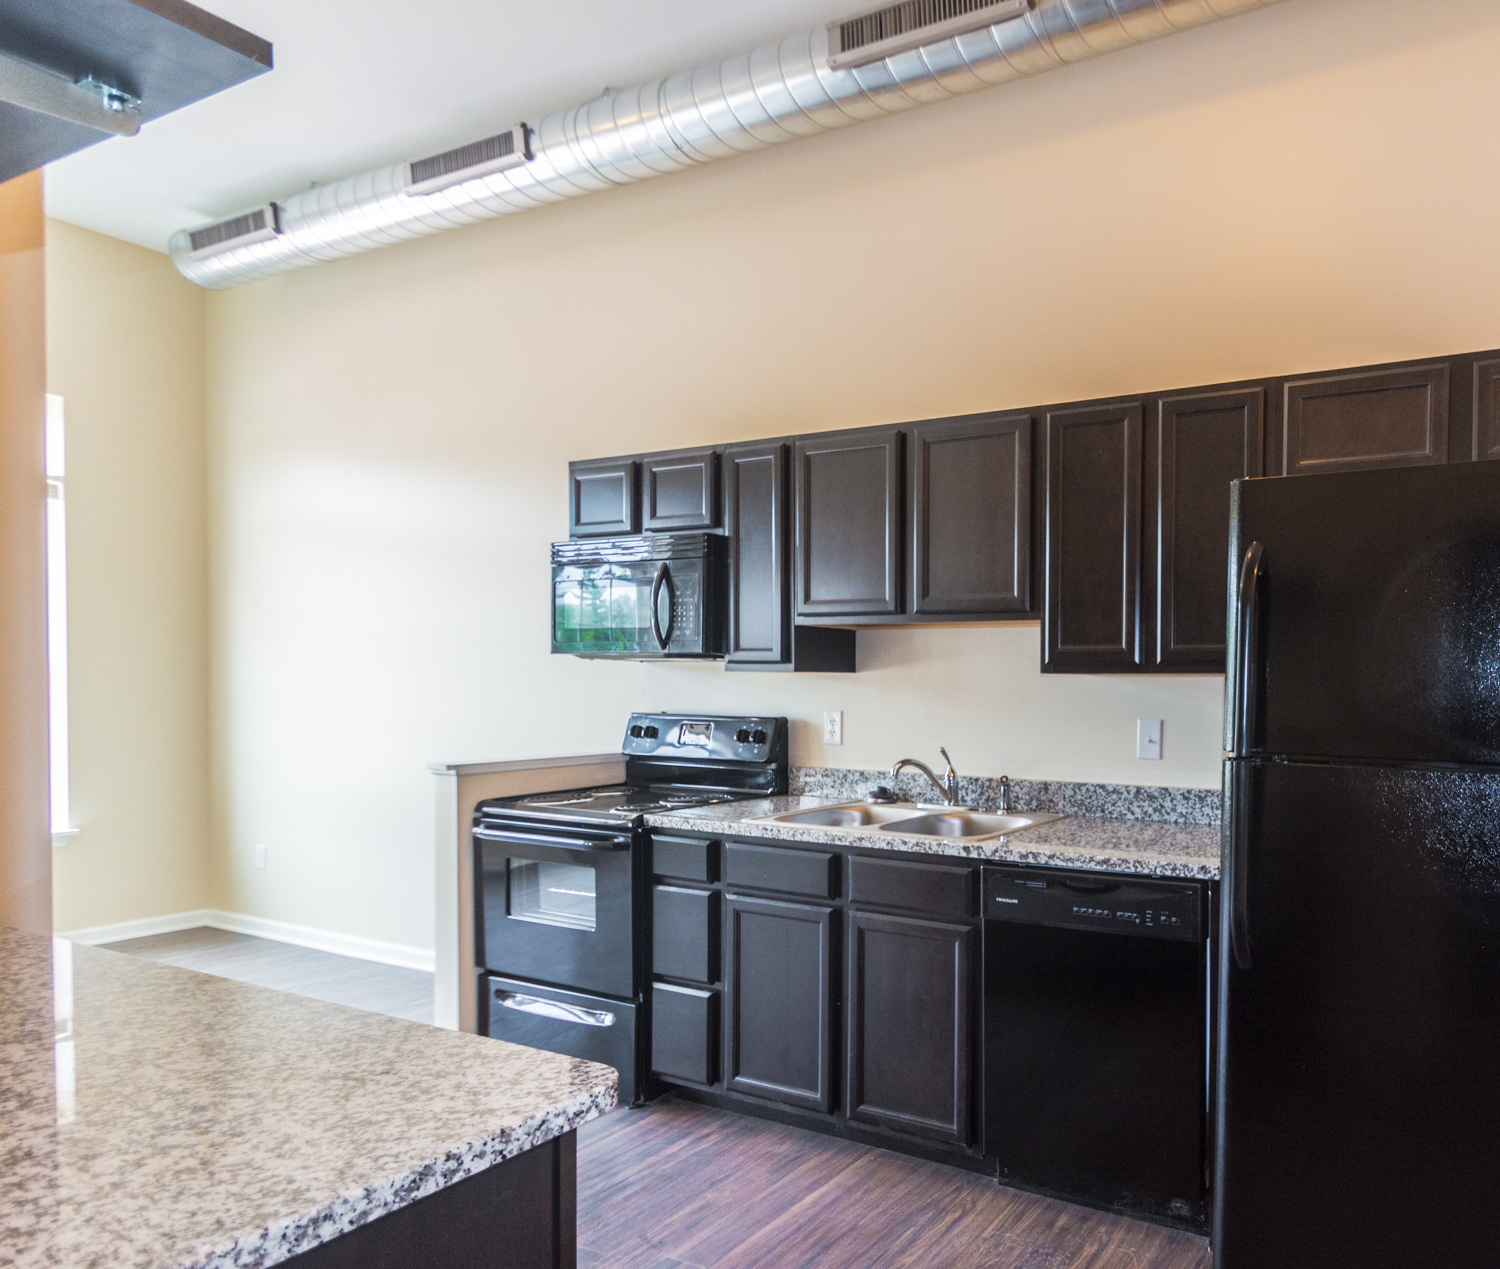 Studio  1  2   3 Bedroom Apartments Downtown Bloomington. Bloomington Gateway   Commercial Space and Apartments Downtown